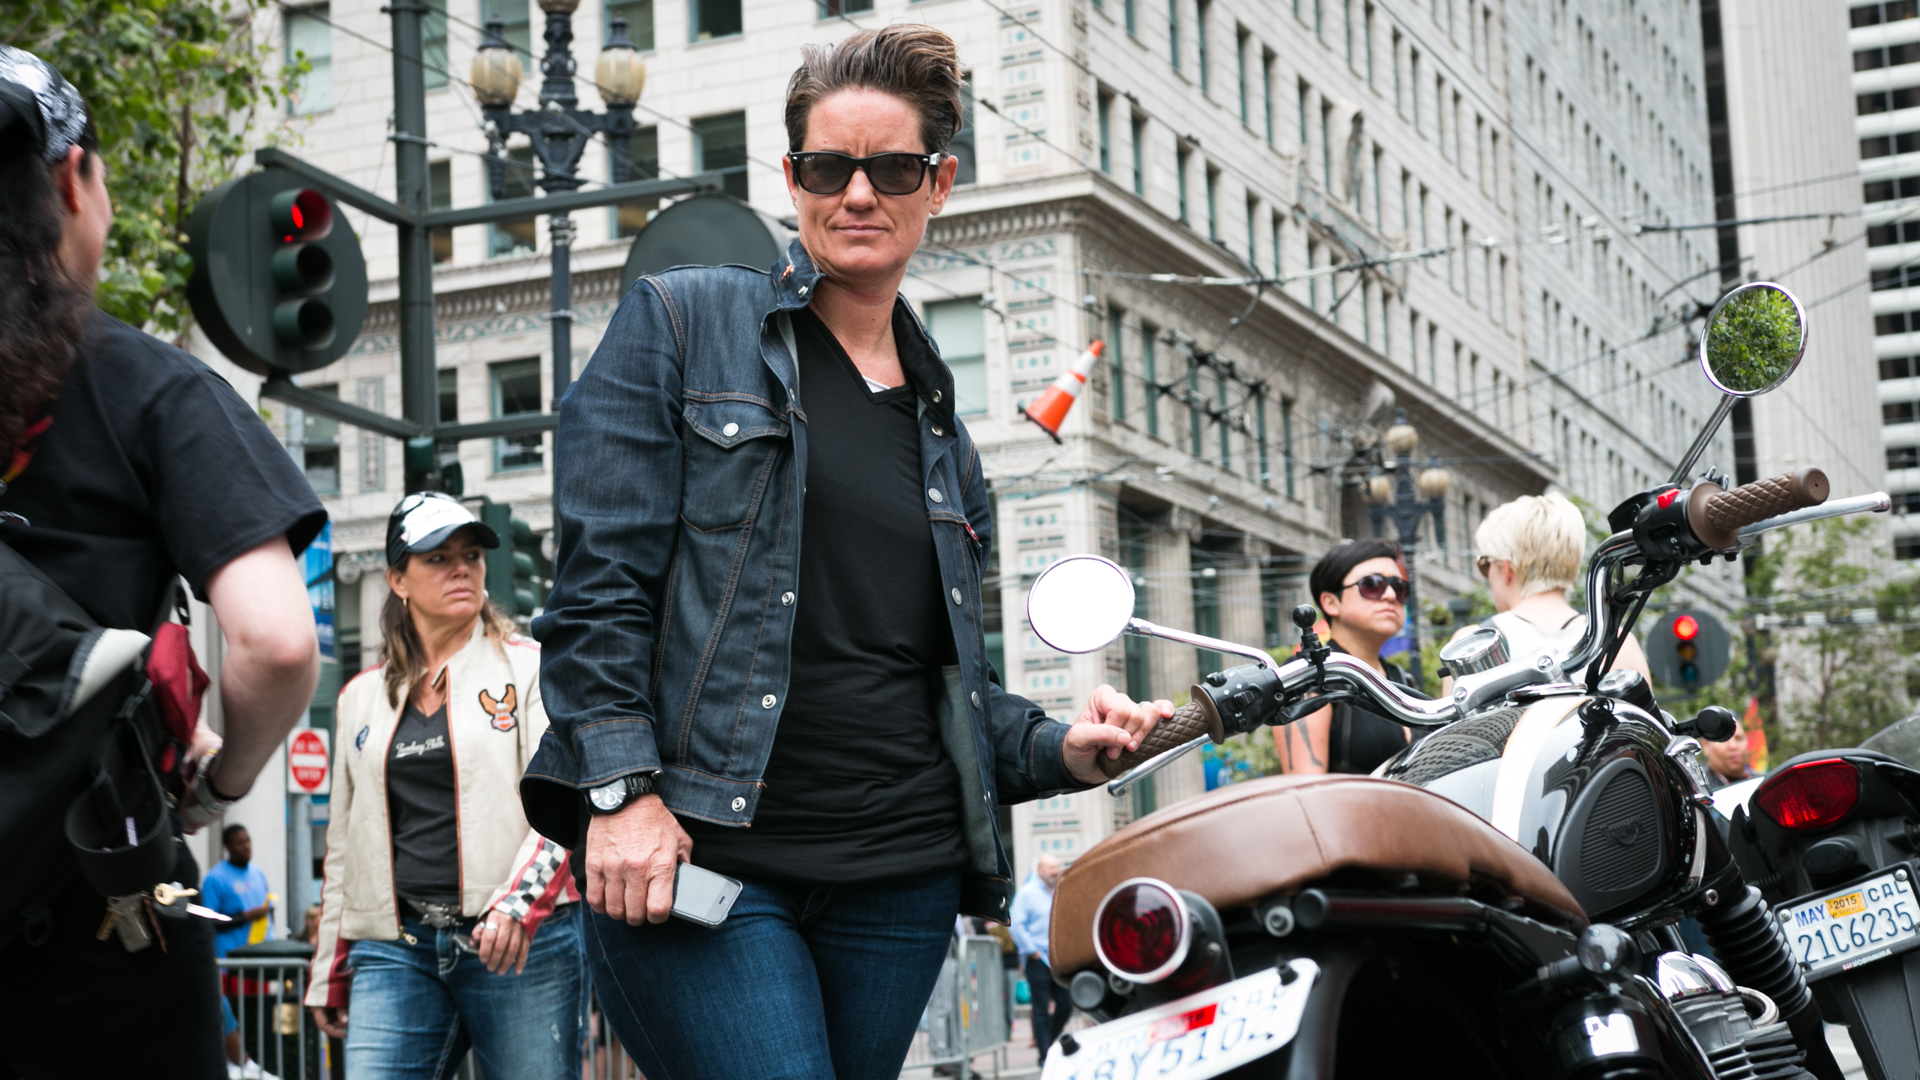 Lydia Brown has been riding in the parade for 10 years (Jeremy Raff/KQED).